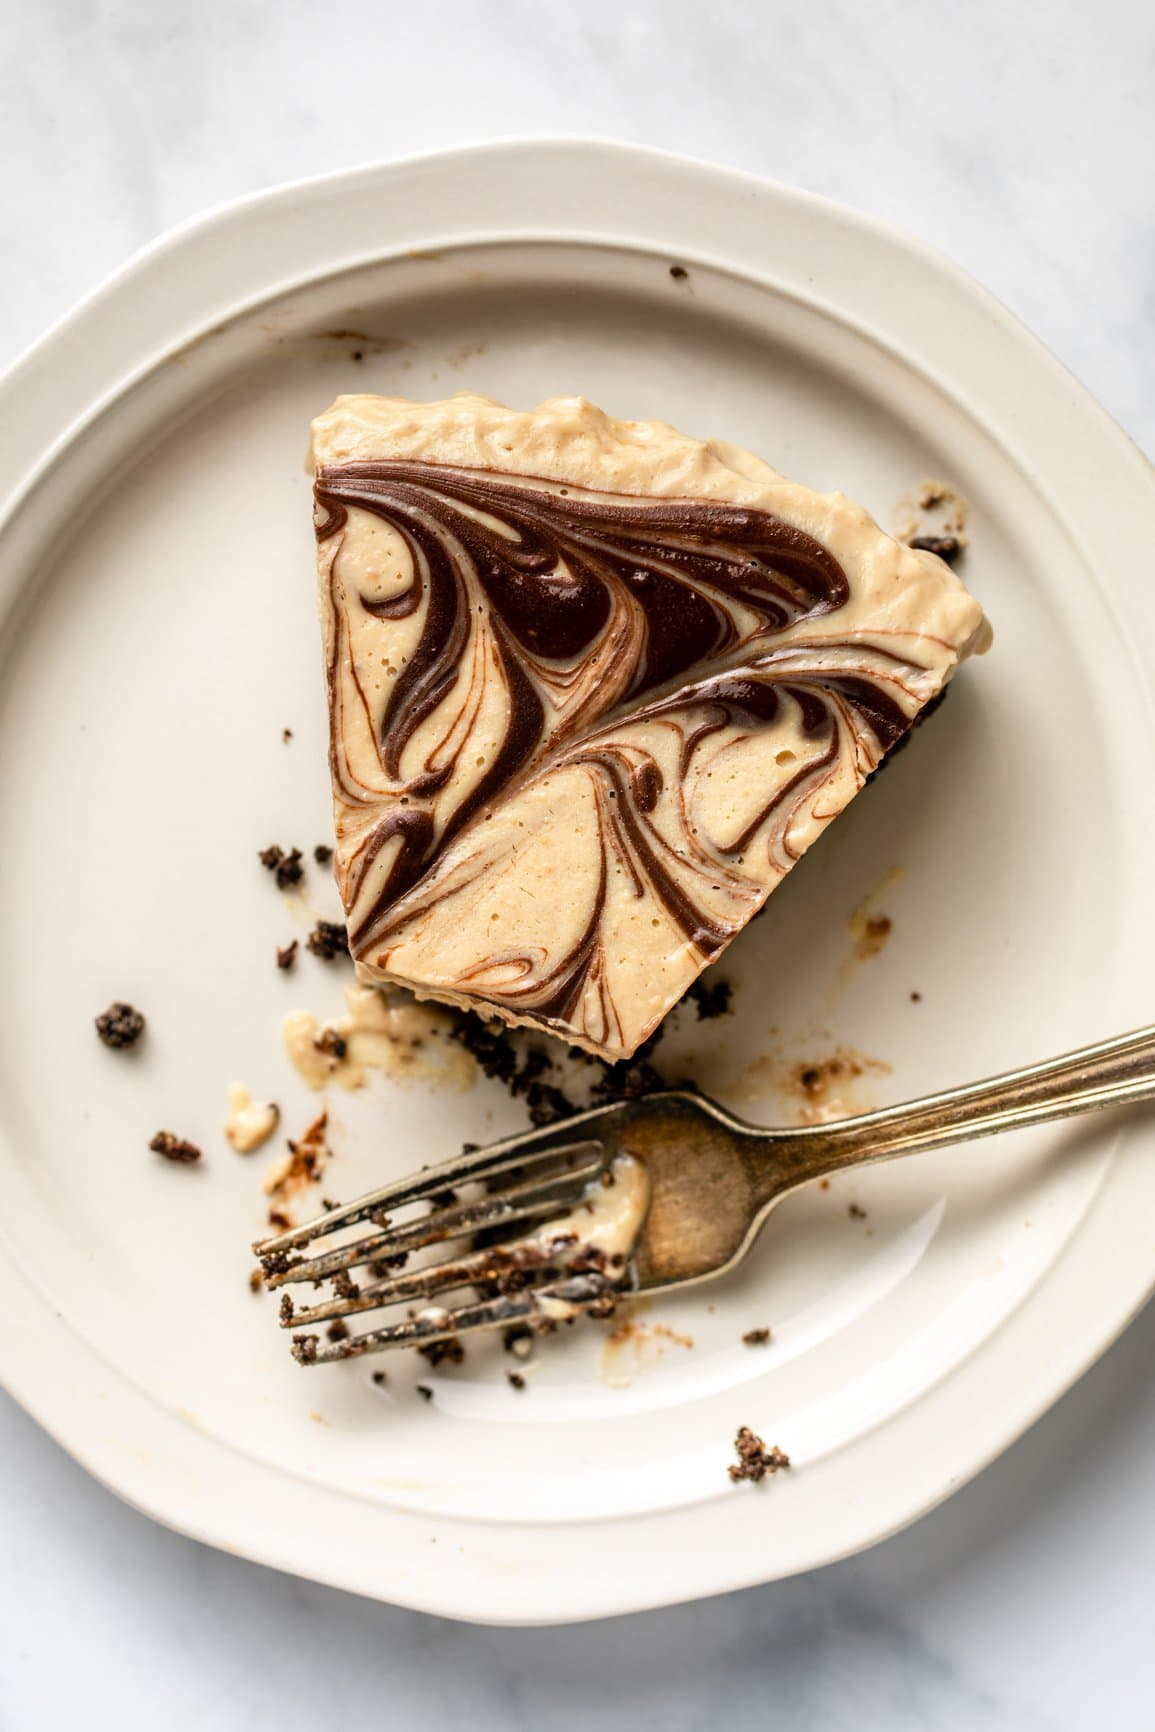 no-bake chocolate peanut butter pie on white plate with bite taken out of it